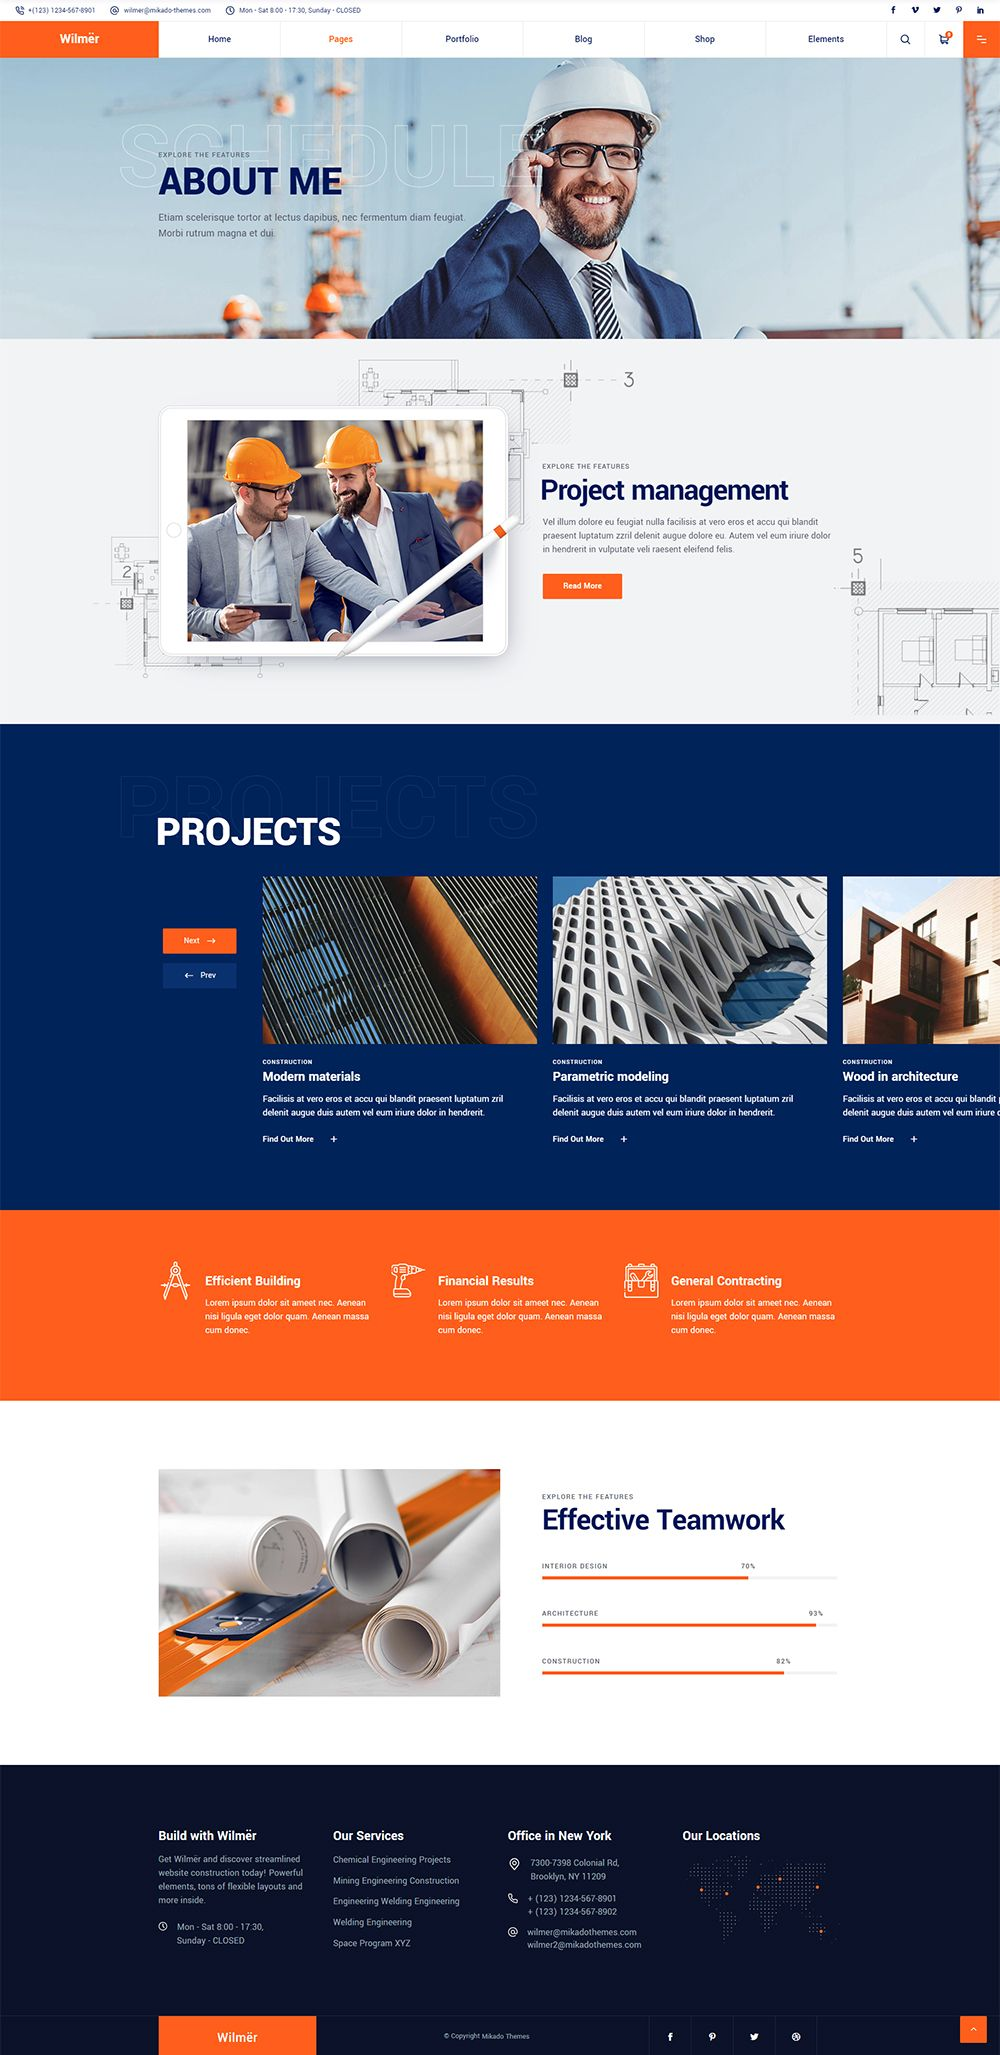 Wilmer About Me In 2020 Simple Web Design Corporate Web Design Web Layout Design